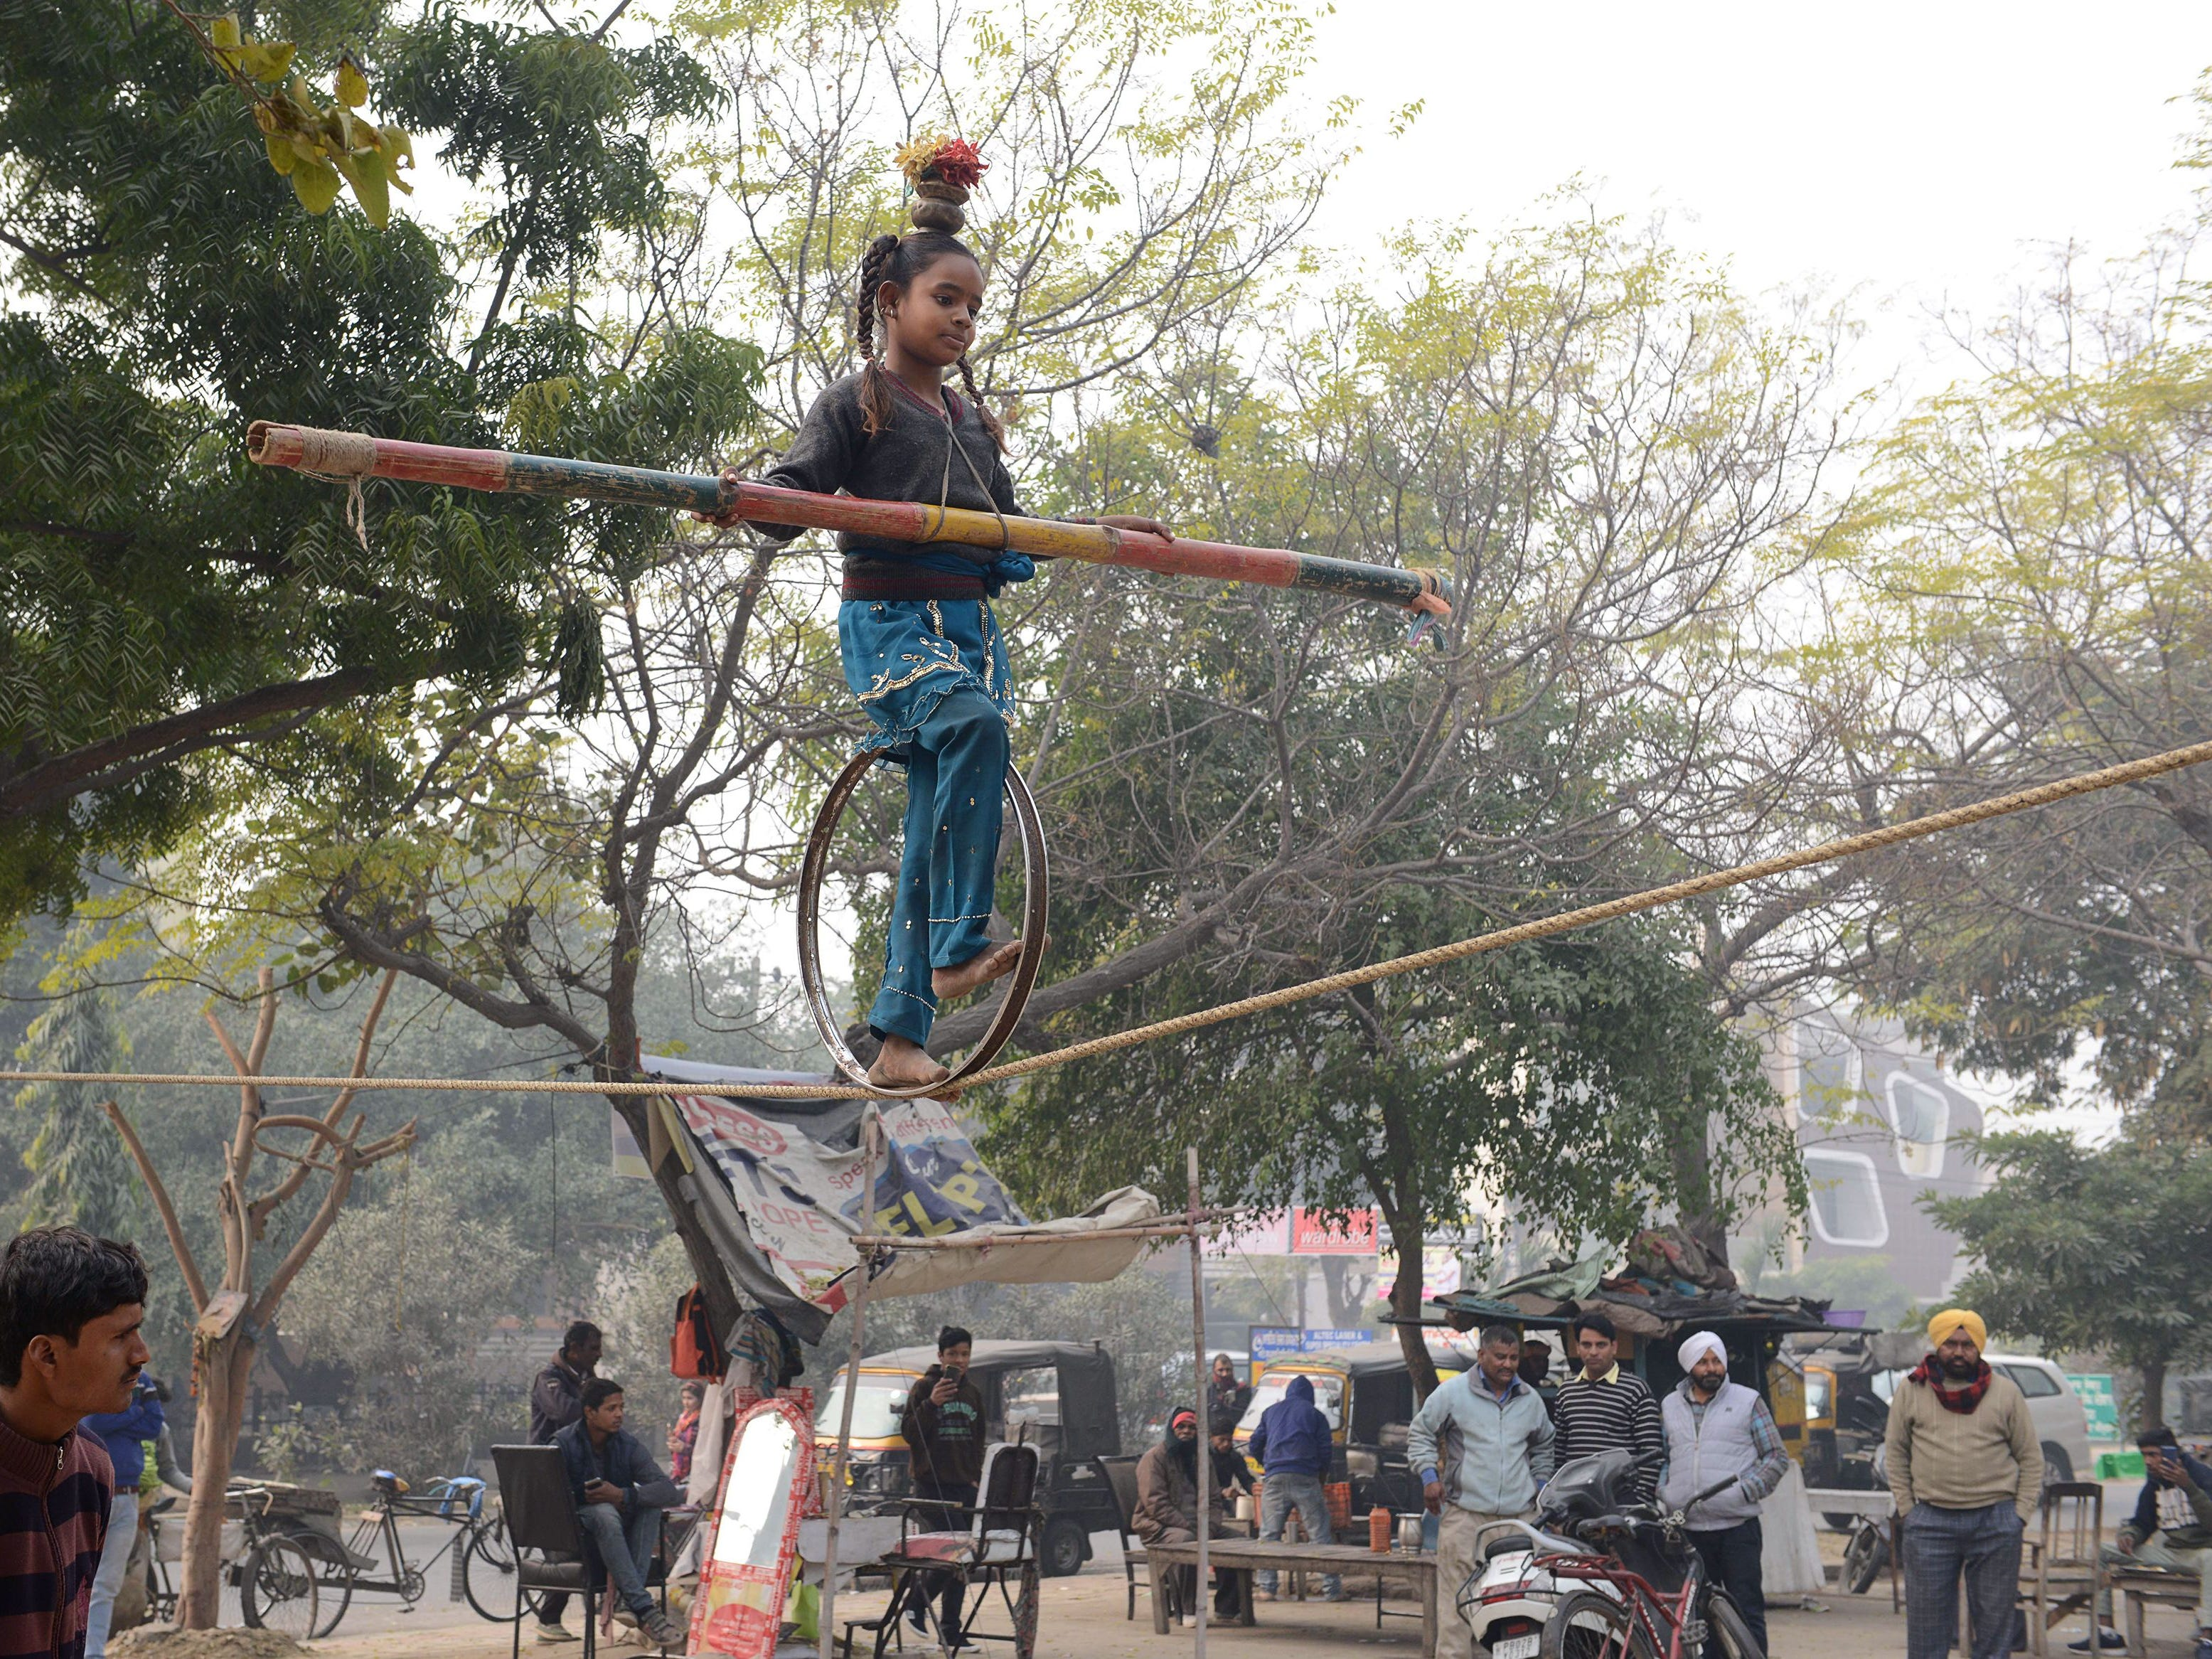 Laxmi, 10, undertakes a balancing act on a rope during a street show in Amritsar, India,  on Jan. 2, 2019.  Traveling performers earn a meager income putting on such entertainment, often scouting out areas to gather a large group of onlookers, who then give money on a collection plate at the end of the show.